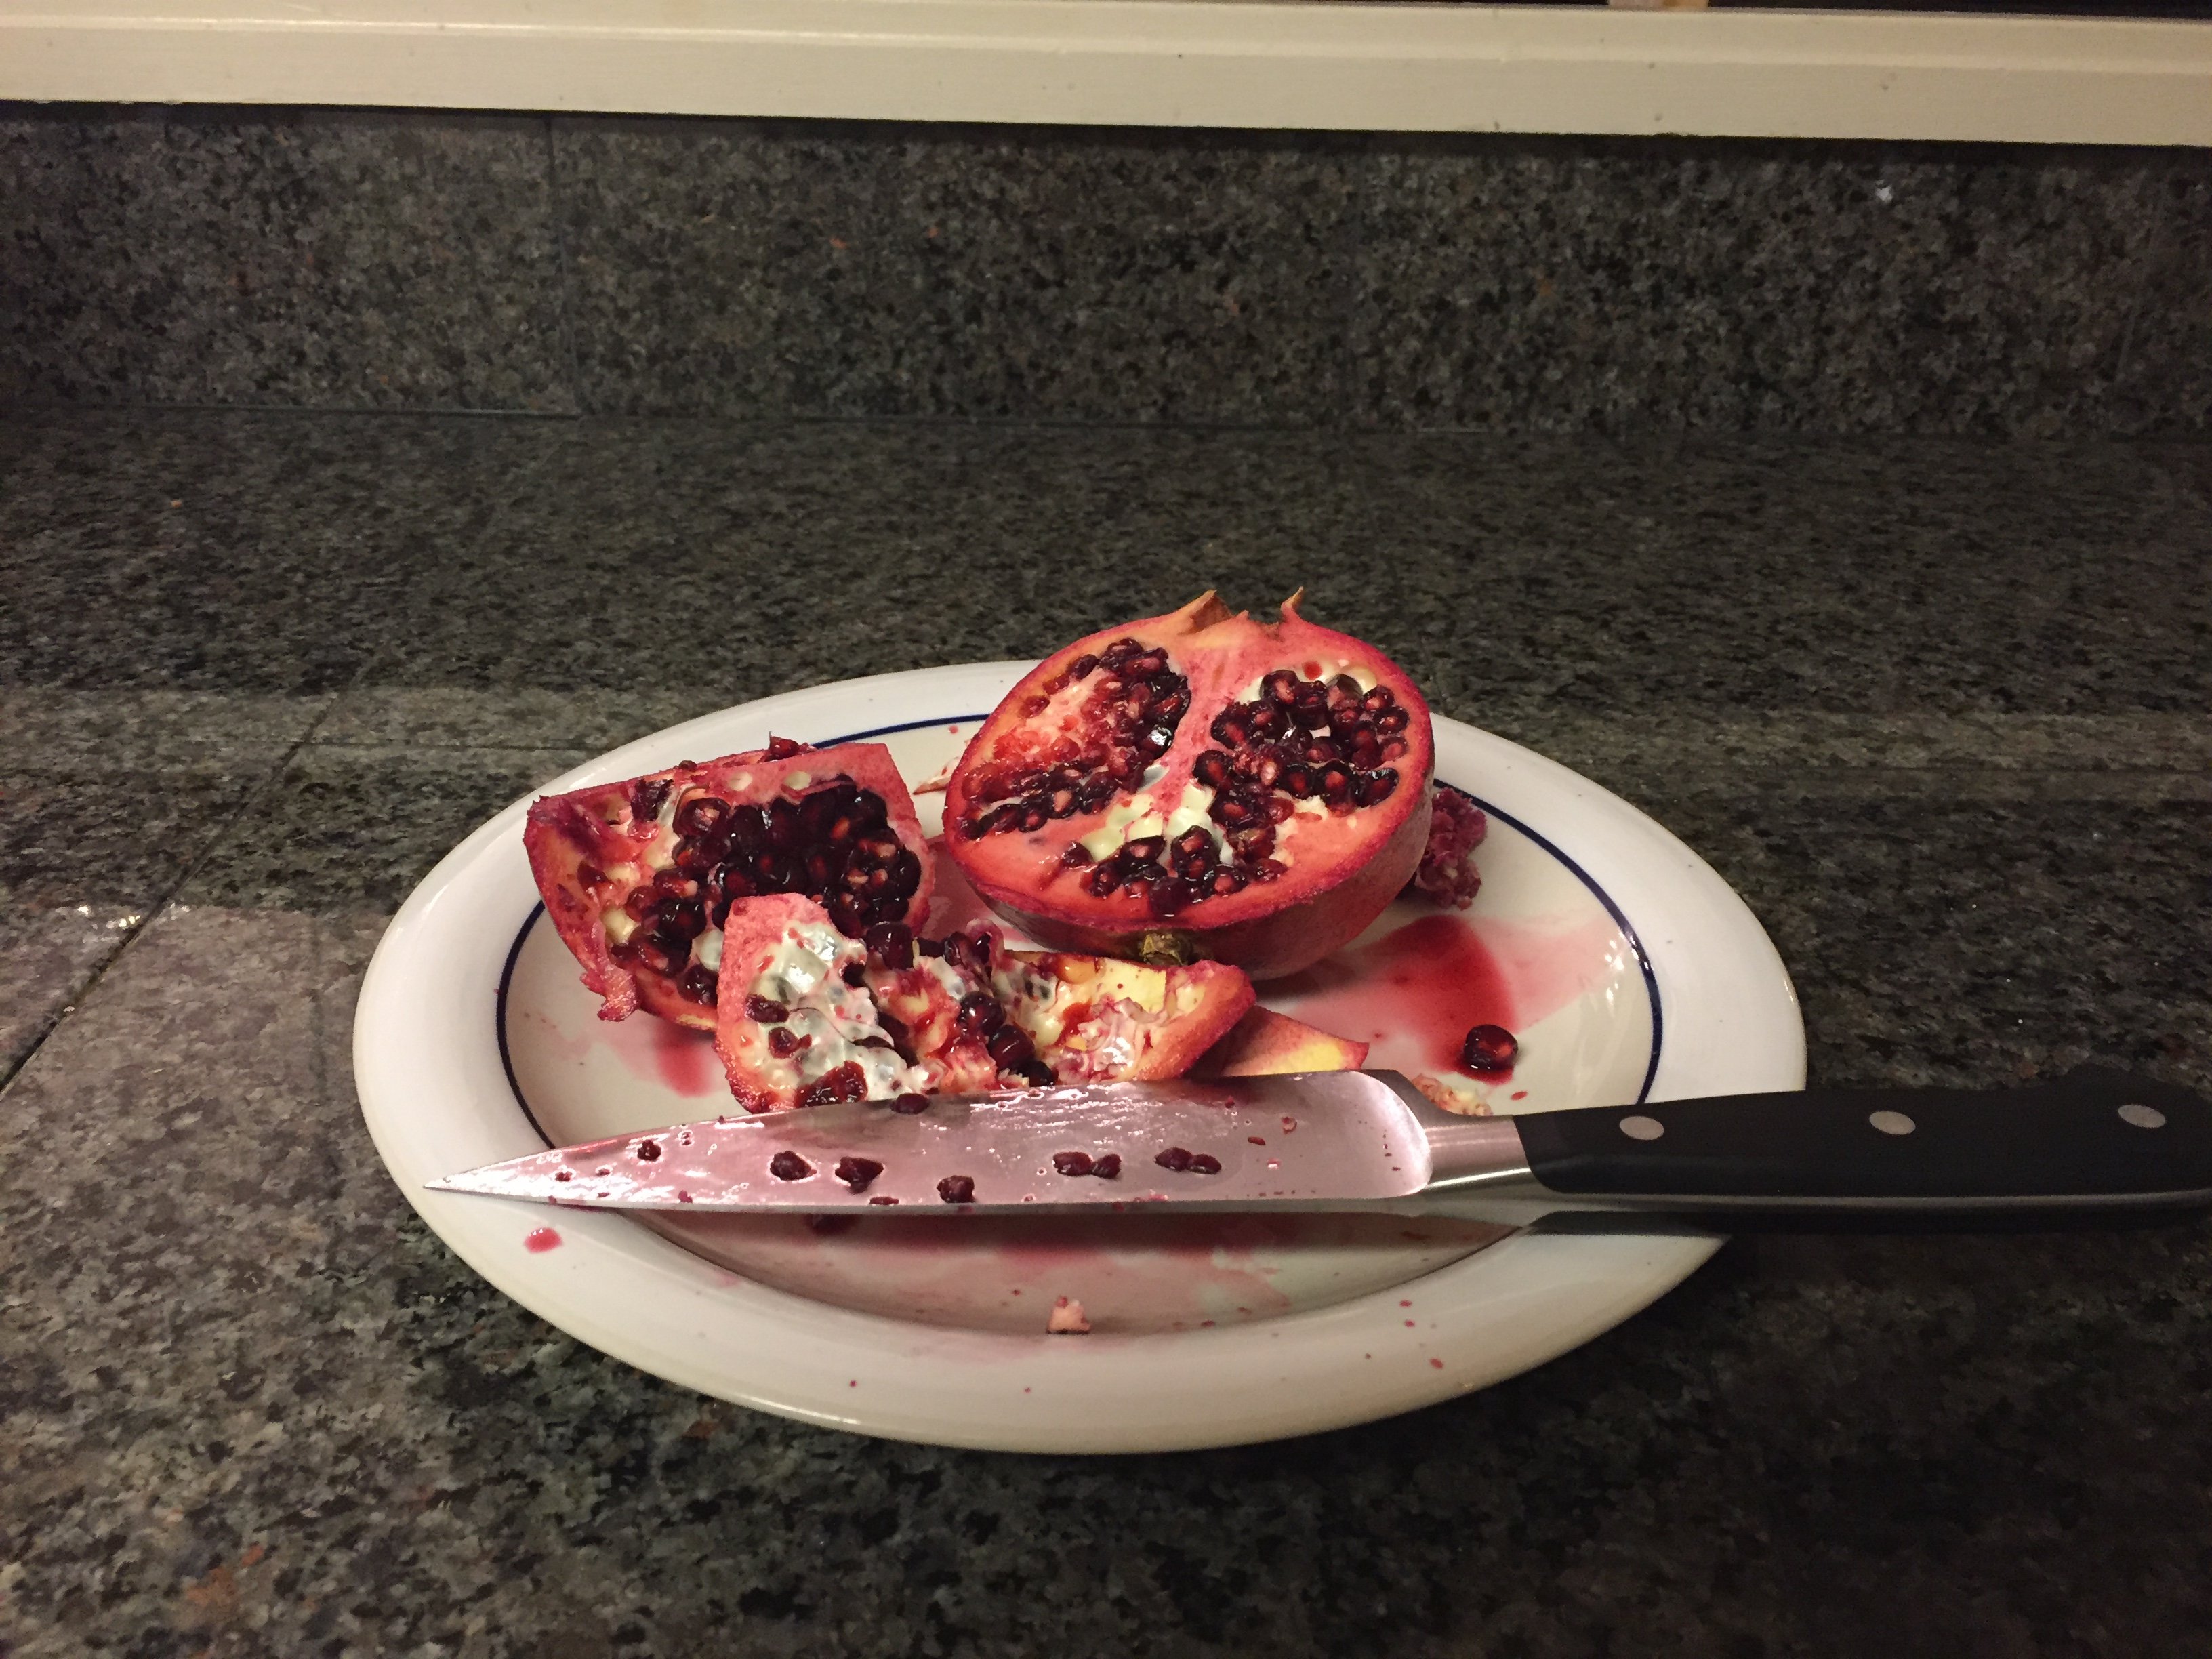 Eating a Pomegranate